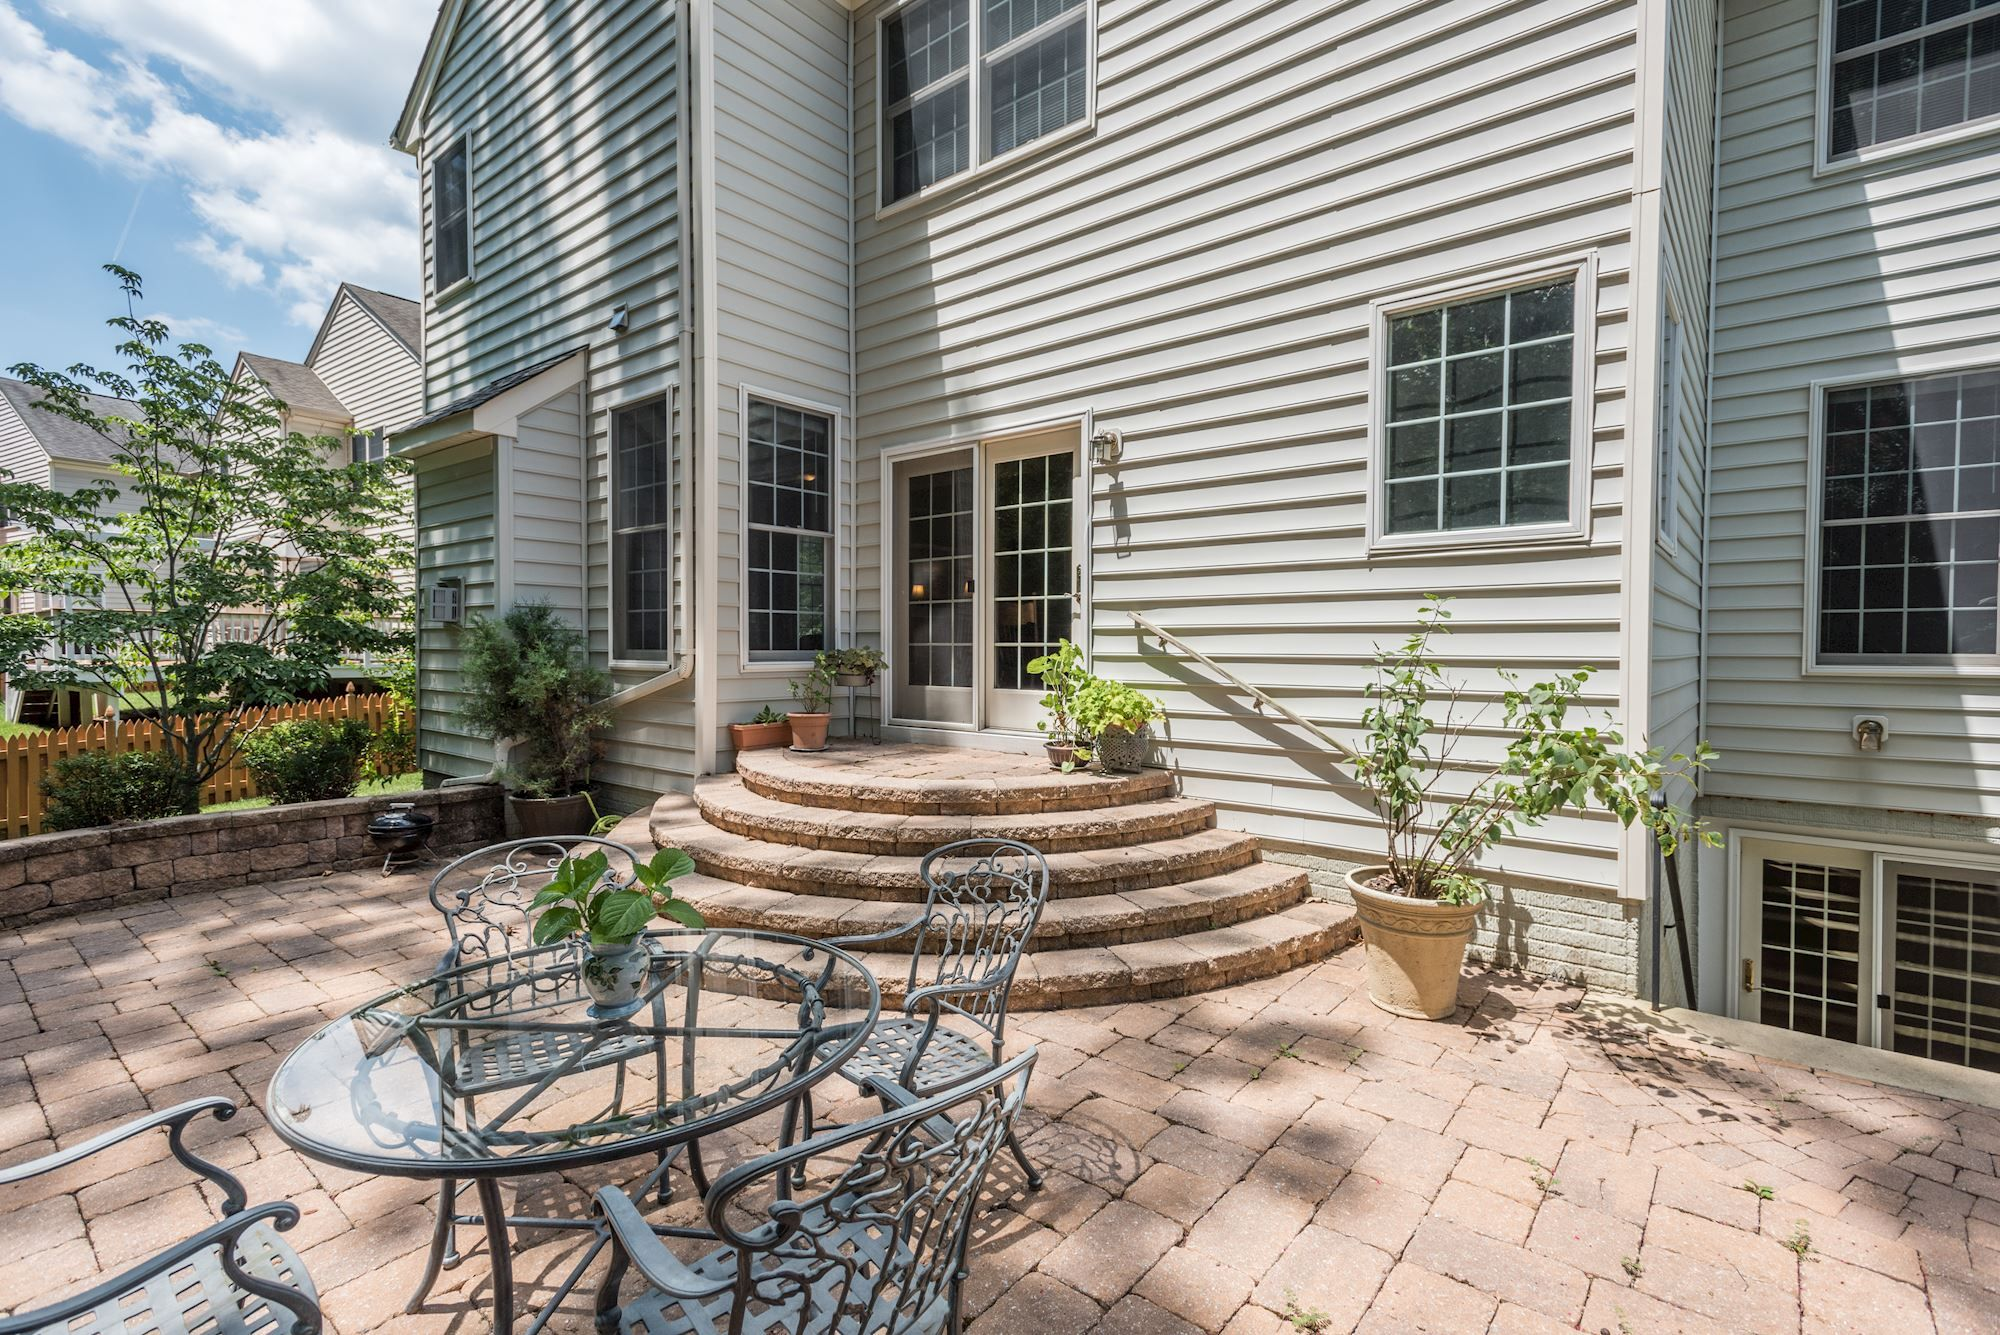 4 Bedrooms, 2 Full Baths, 2 Half Baths, Finished Basement, Sitting Room Off  Master. MLS# PW9691768 Dominion Valley Country Club, Haymarket, DC Metro  House ...